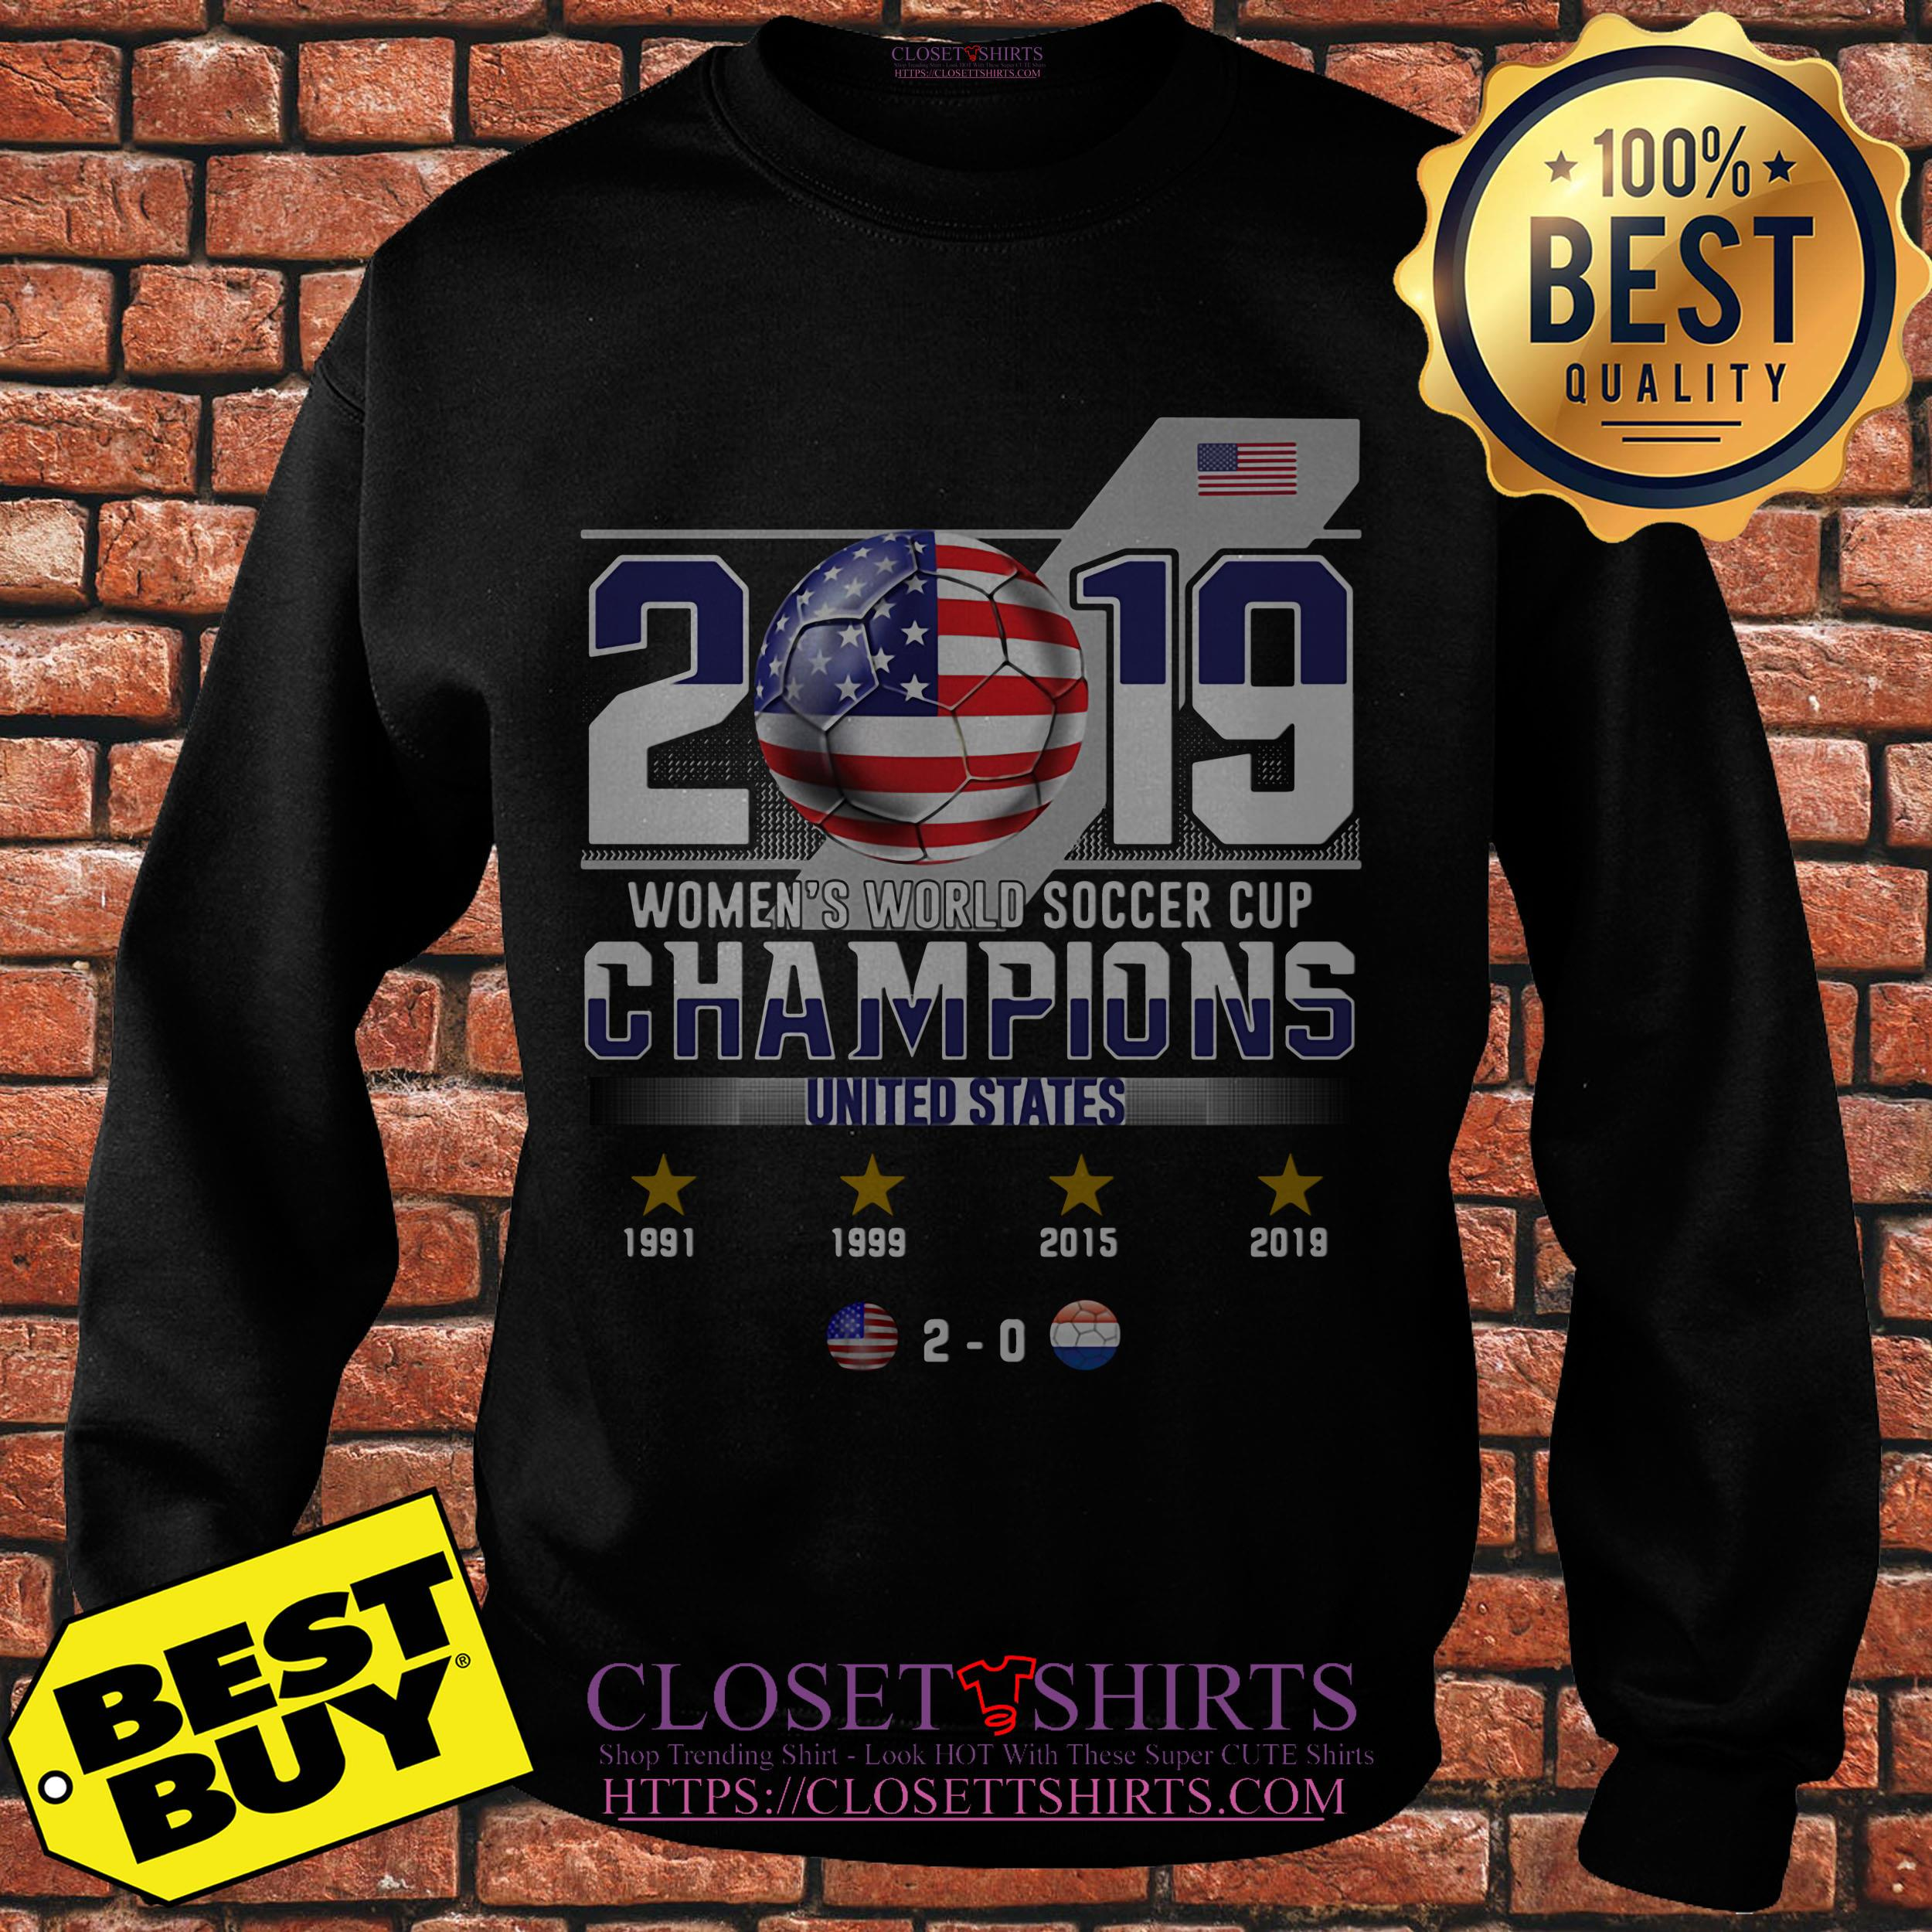 2019 Women's World Soccer Cup Champions United States sweatshirt